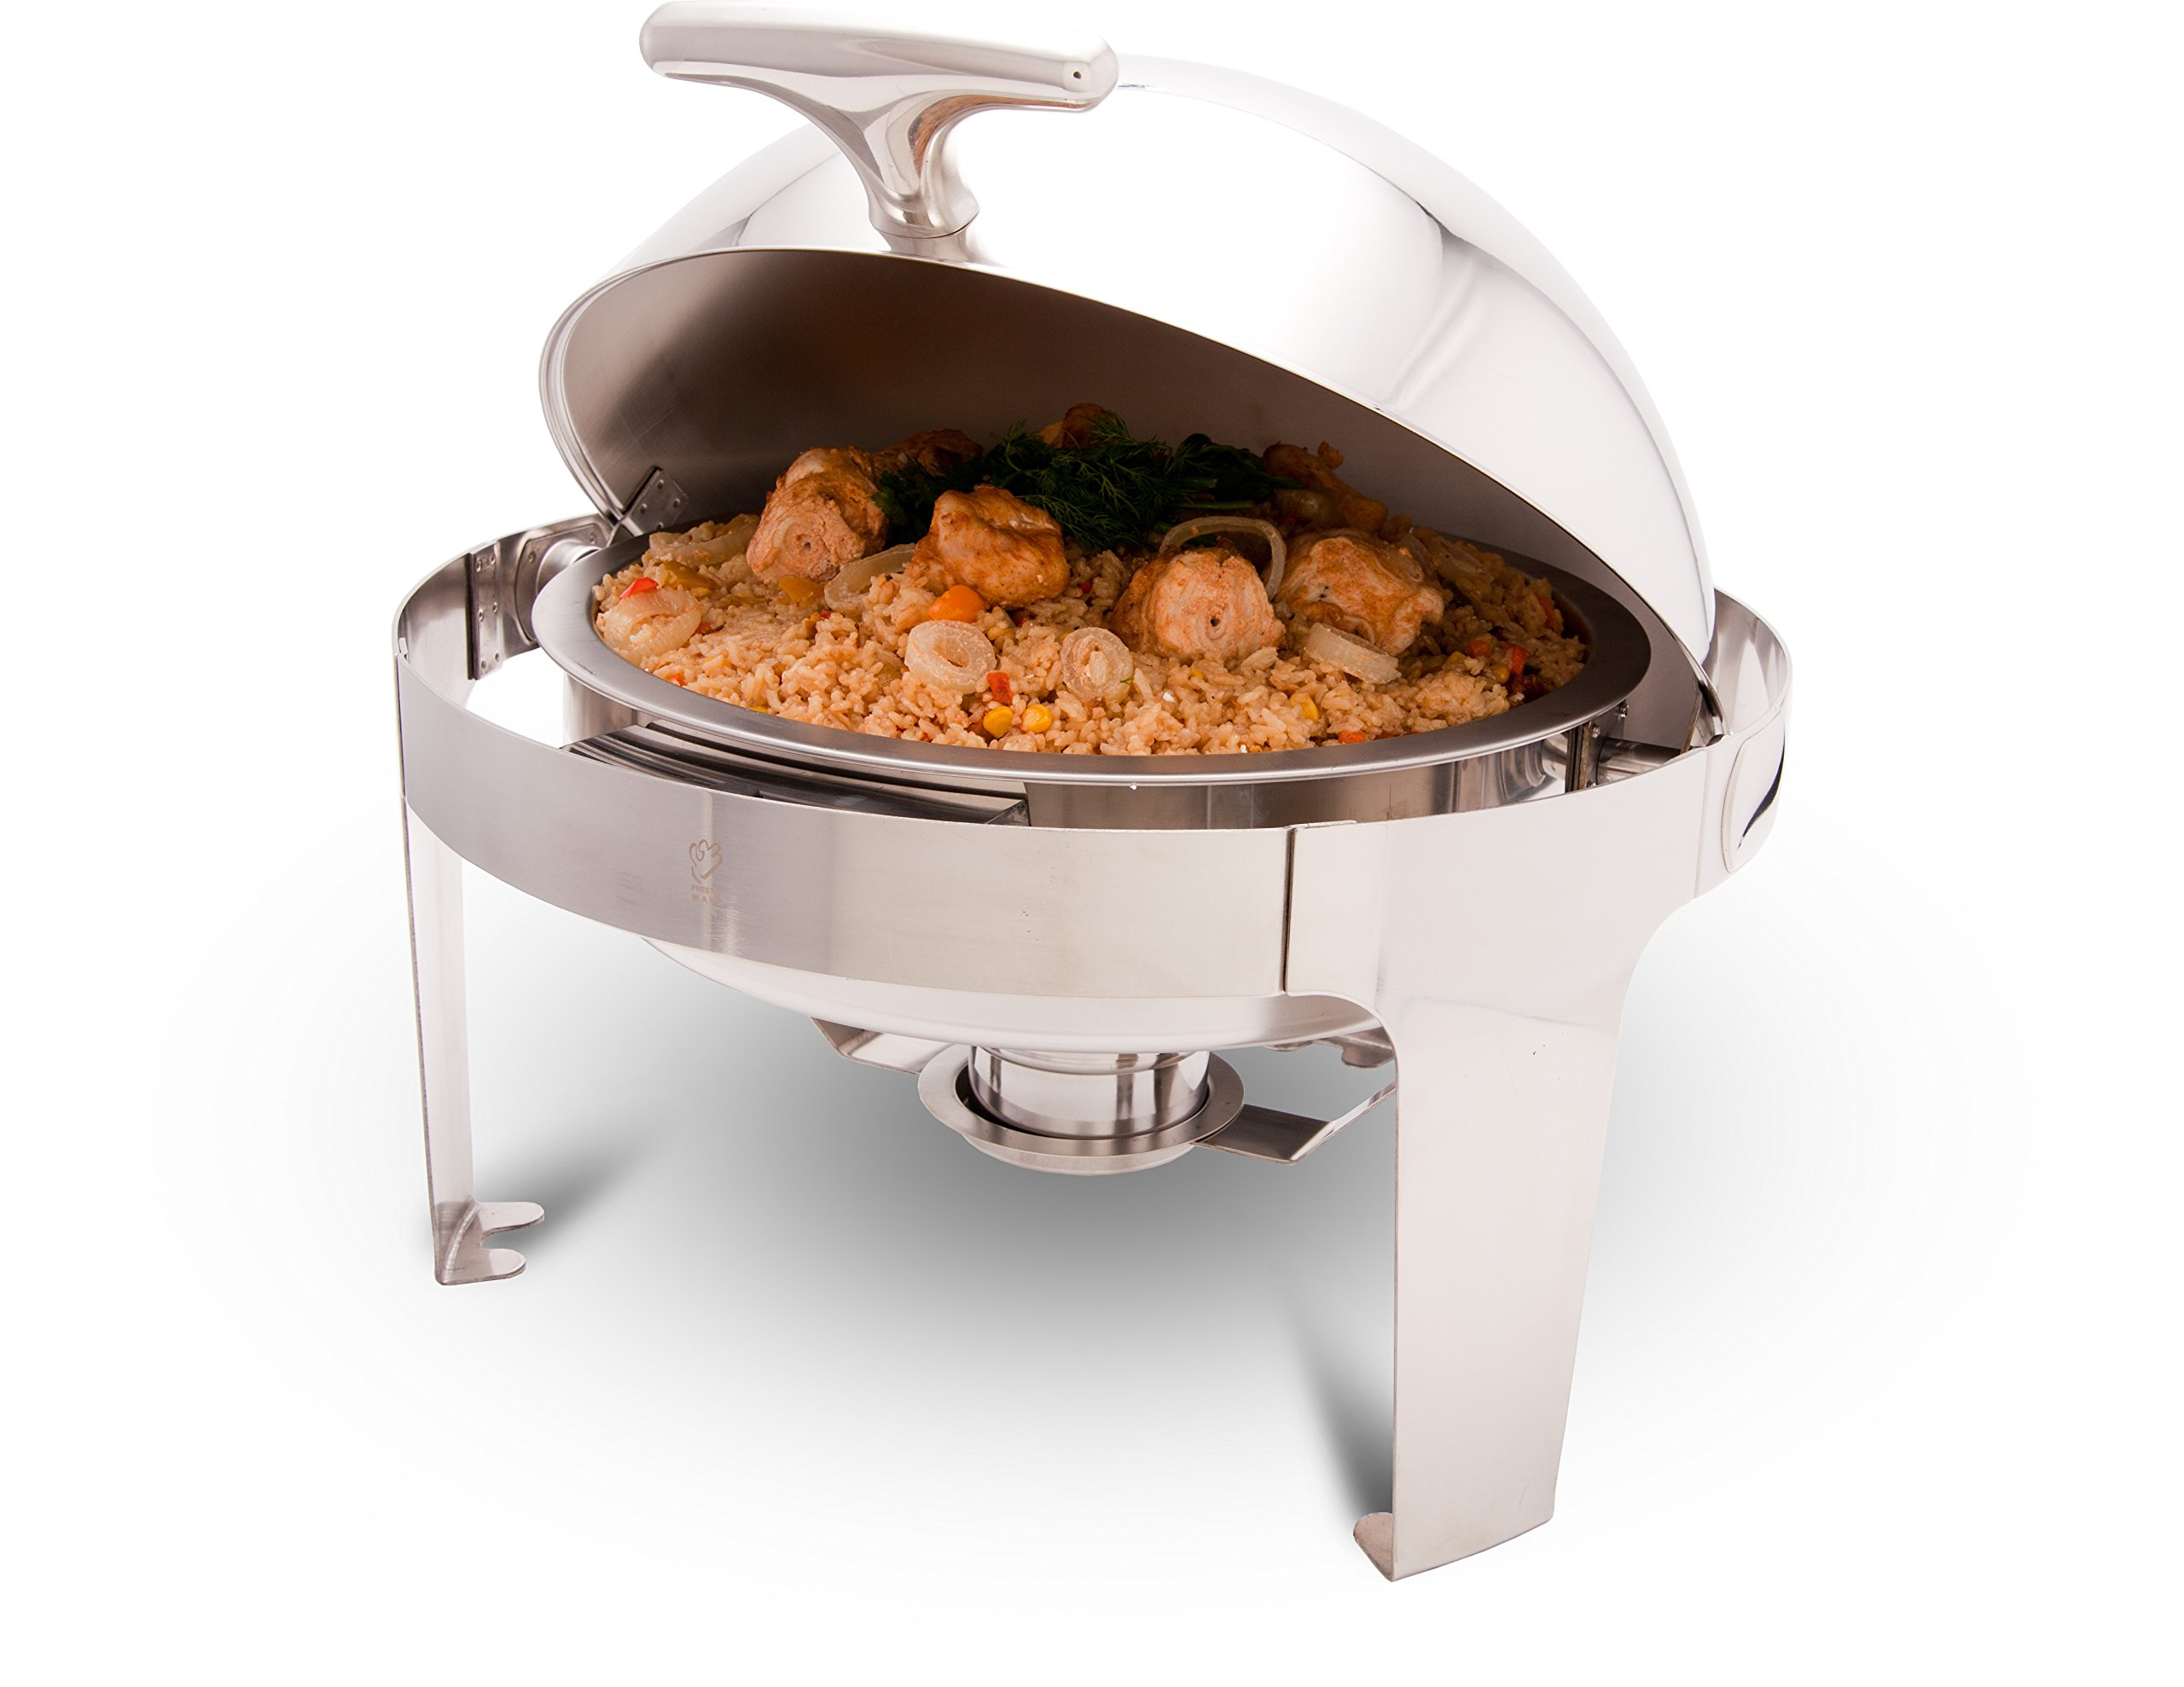 PrestoWare PWR-1RR Round Roll-Top Chafing Dish 5 Qt with Stand, Stainless Steel Chafer for Catering - Presto ware